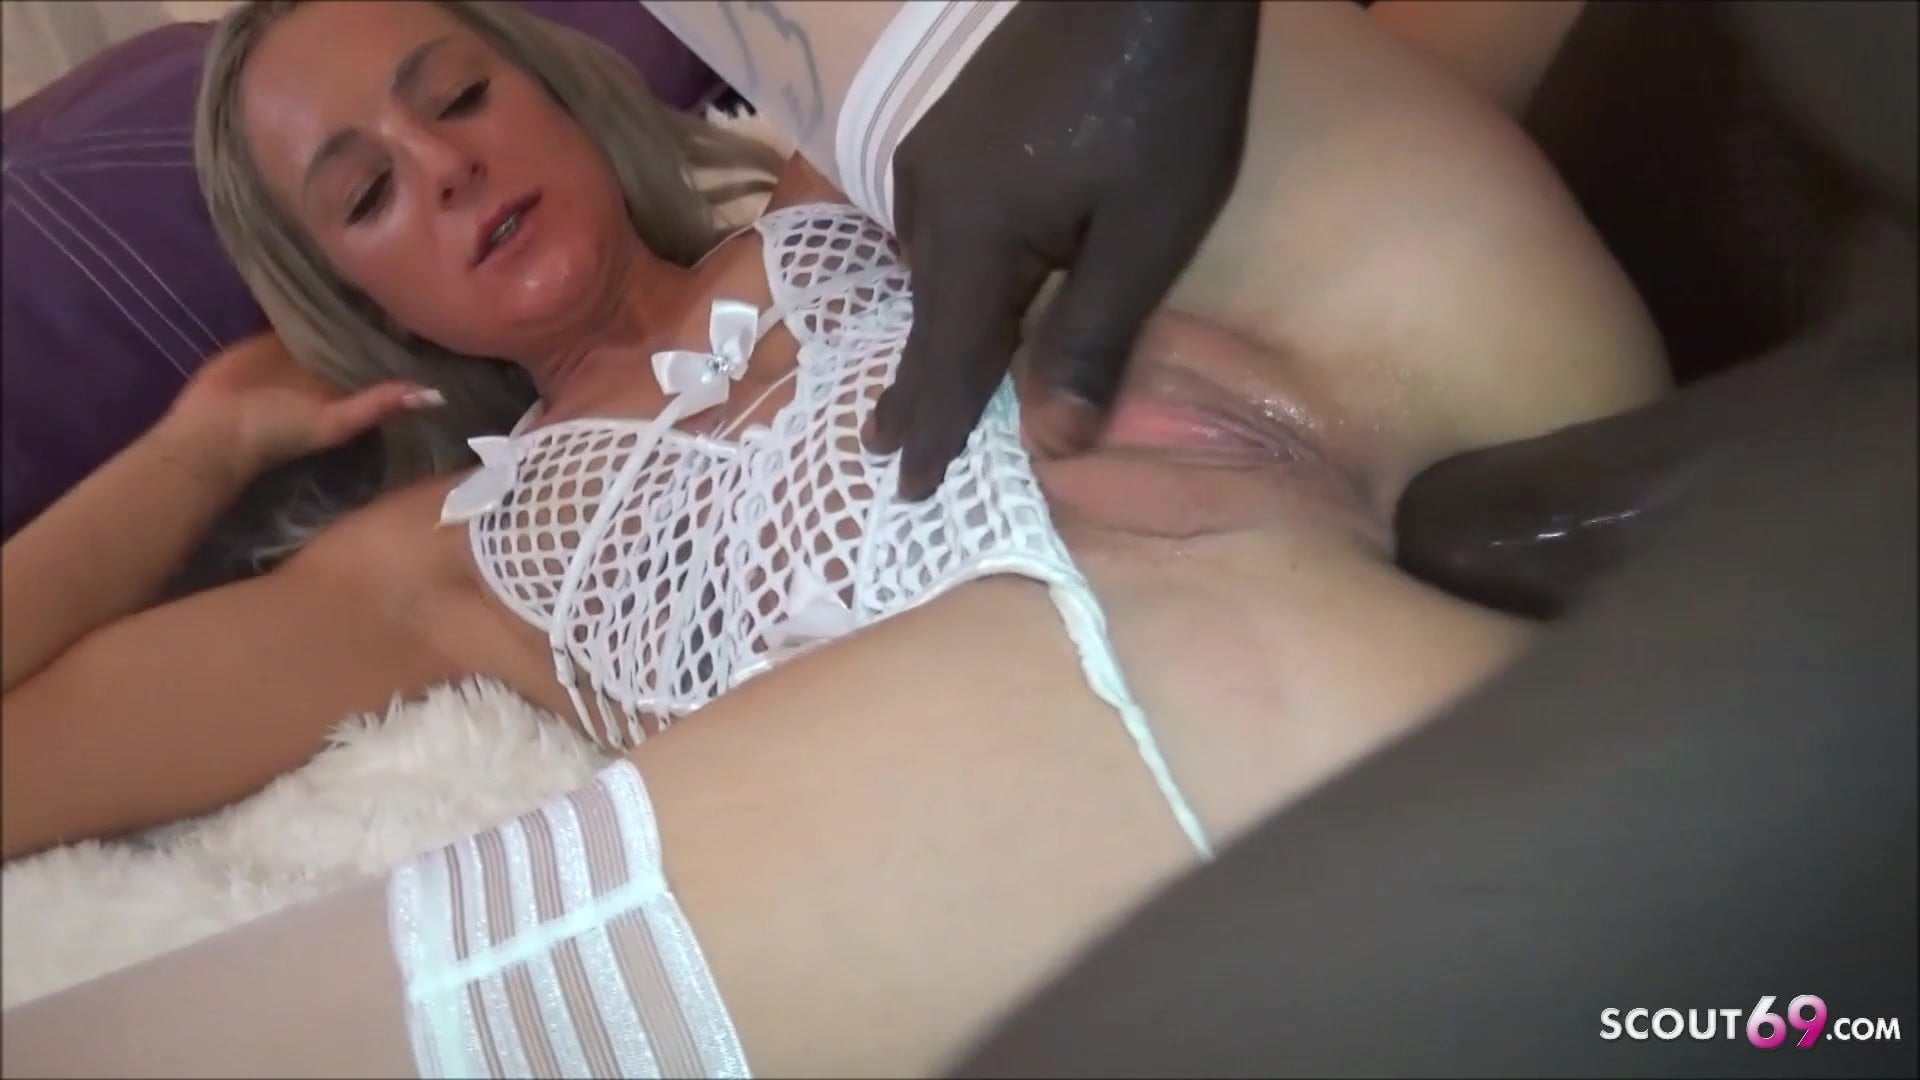 Teen Selfmade Intercourse with Enormous Black Cock and Pal Filming